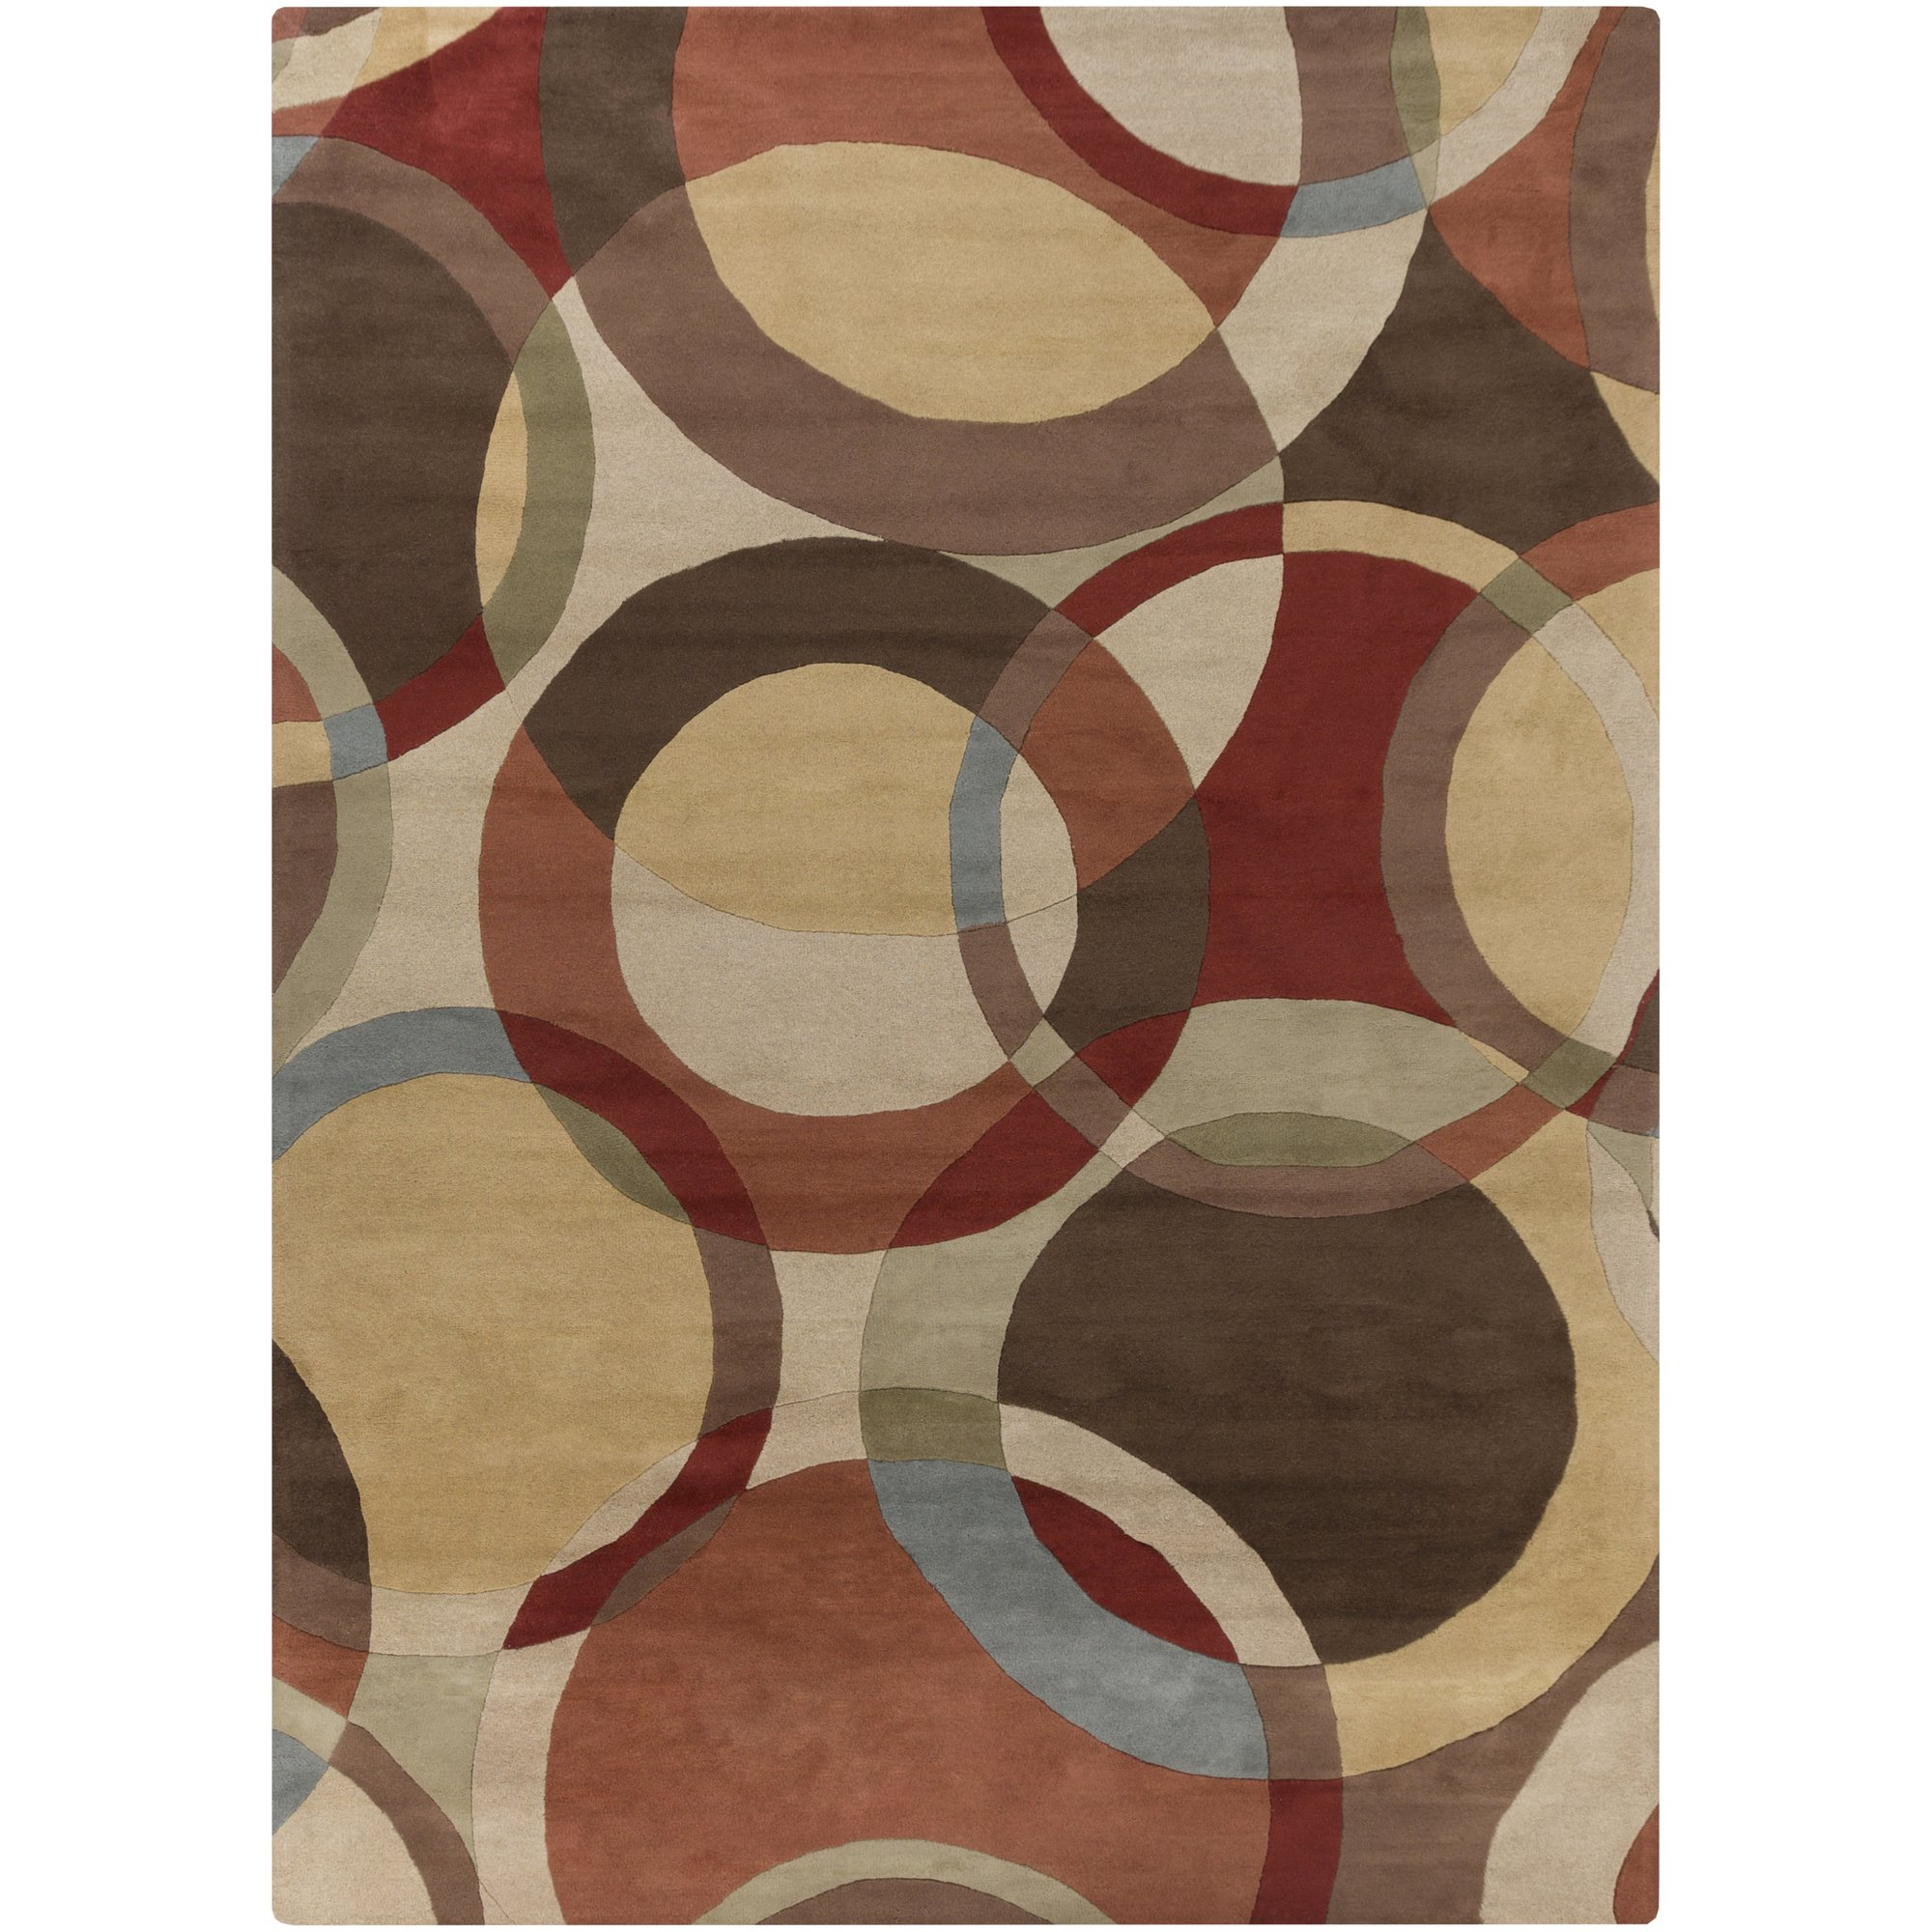 Surya Forum FM-7108 Contemporary Hand Tufted 100% Wool Dark Khaki 2'6'' x 8' Geometric Runner